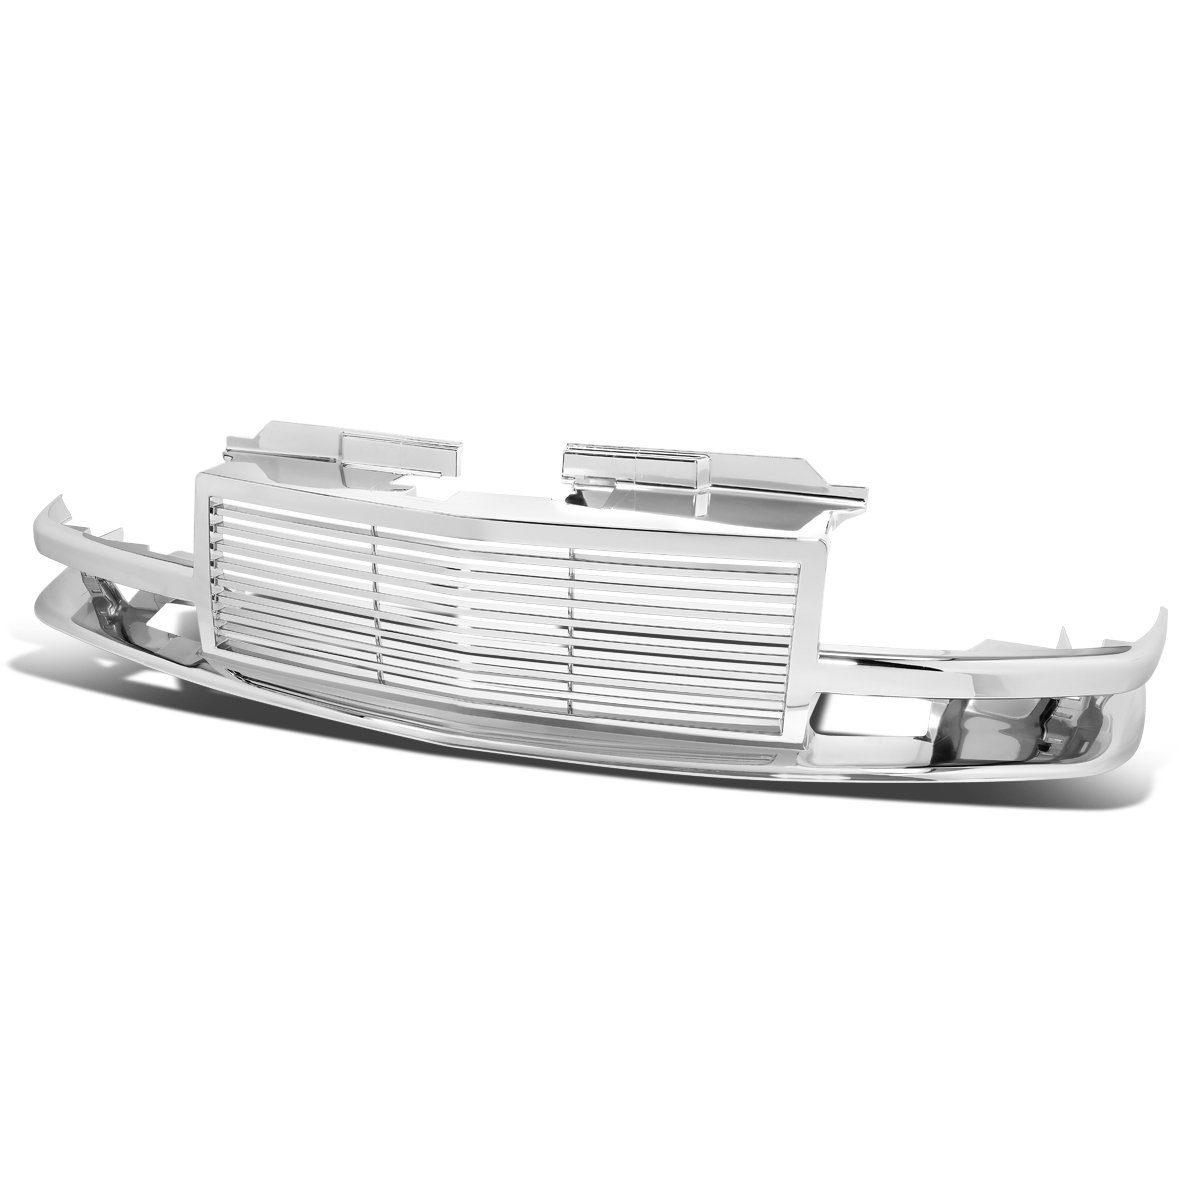 For 98-04 Chevy S10/Blazer ABS Plastic Horizontal Front Bumper Grille (Chrome) - GMT325 GMT330 Auto Dynasty GRZ-S10-9802-CM